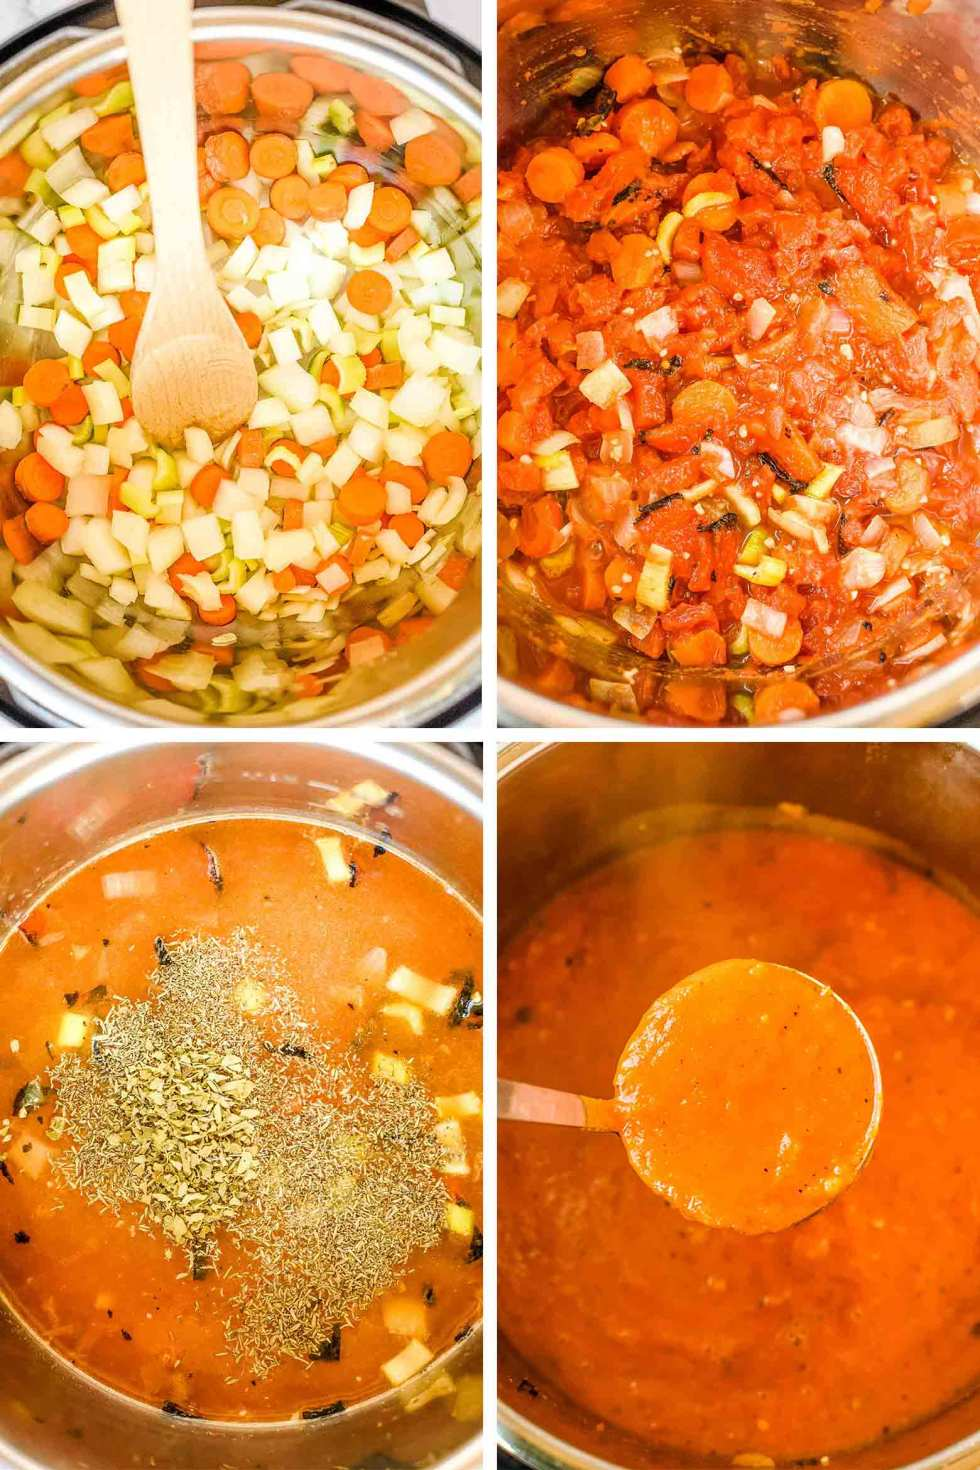 collage of steps of making tomato red pepper soup in a pressure cooker: saute vegetables, add in tomatoes, peppers, and spice, and the soup after it is pureed.